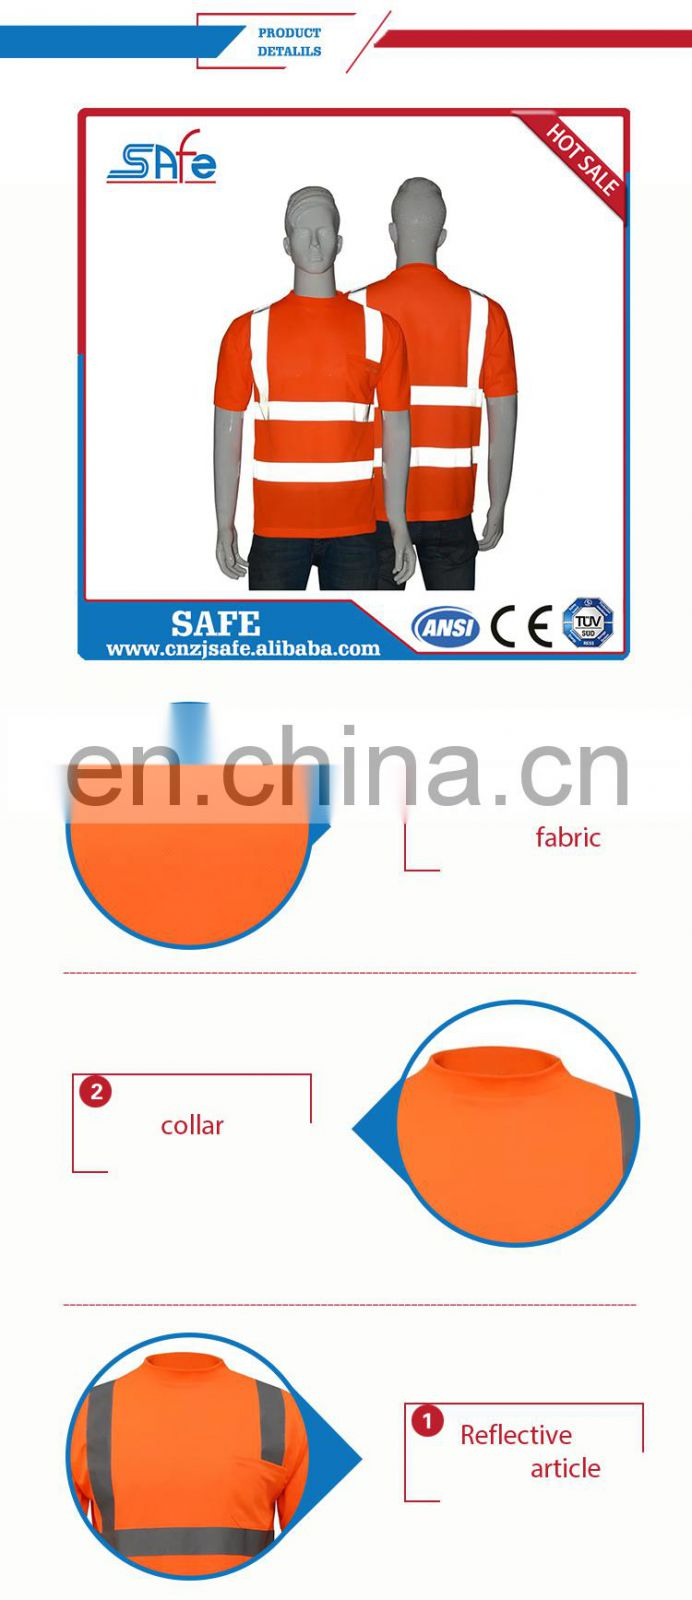 China Supplier high visibility safety shirts long sleeve